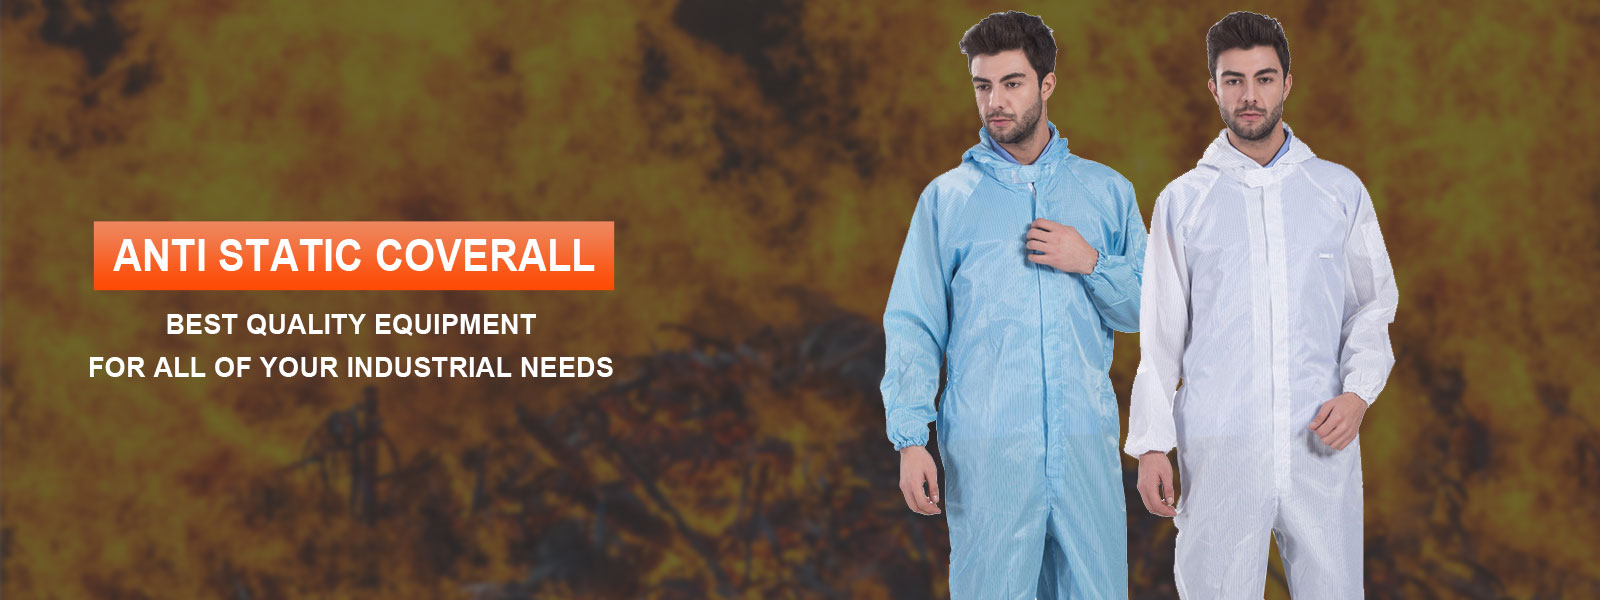 Anti Static Coverall Manufacturers in Rwanda